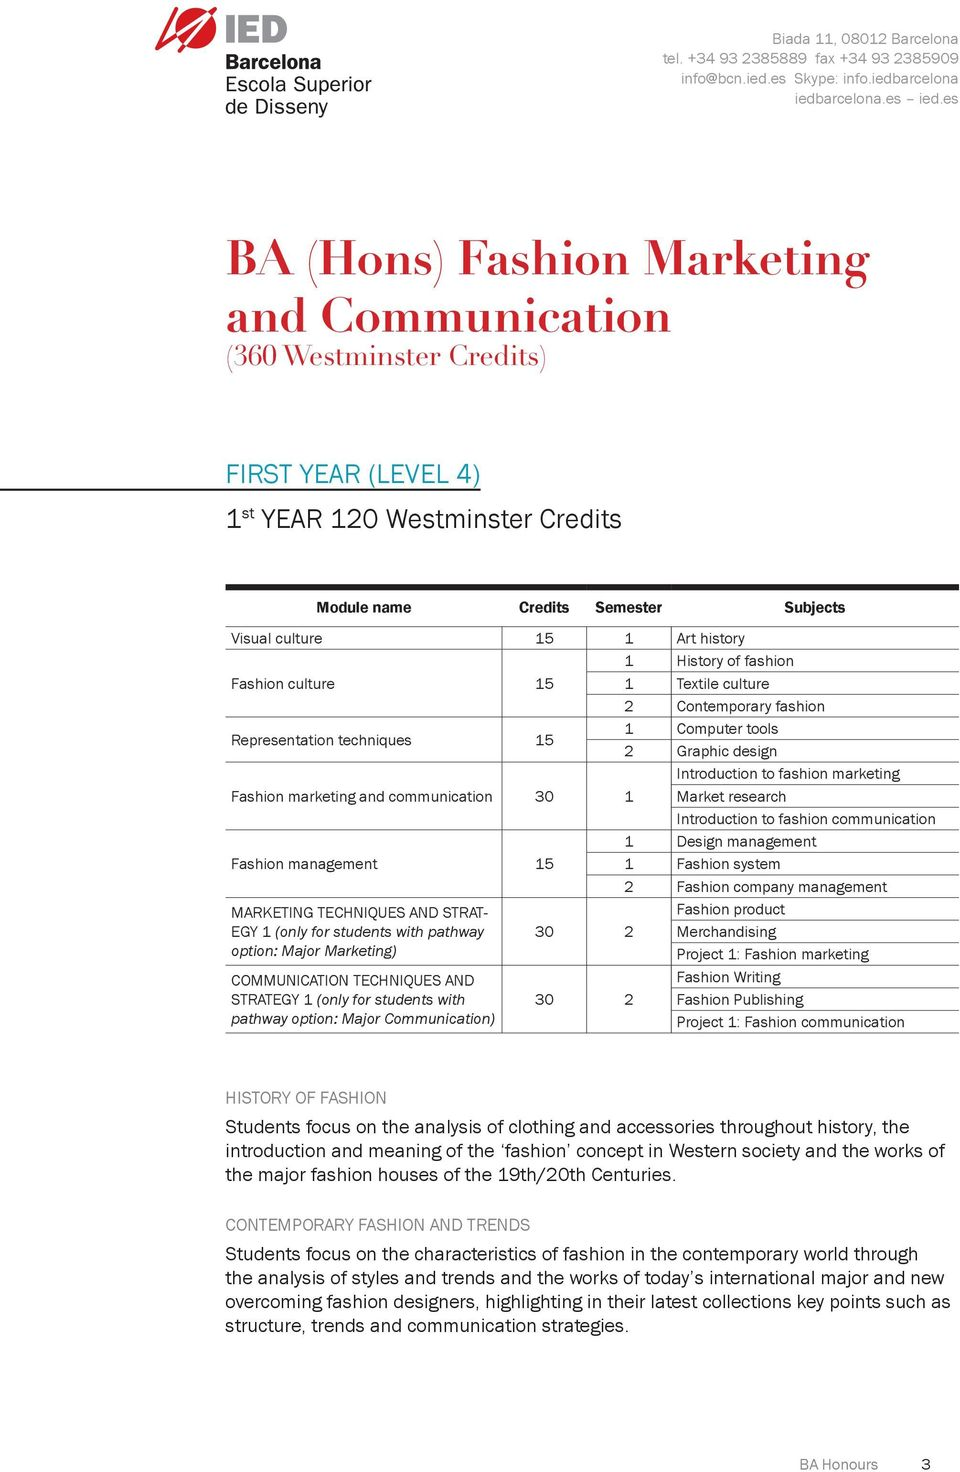 communication 30 1 Market research Introduction to fashion communication 1 Design management Fashion management 15 1 Fashion system 2 Fashion company management MARKETING TECHNIQUES AND STRAT- EGY 1